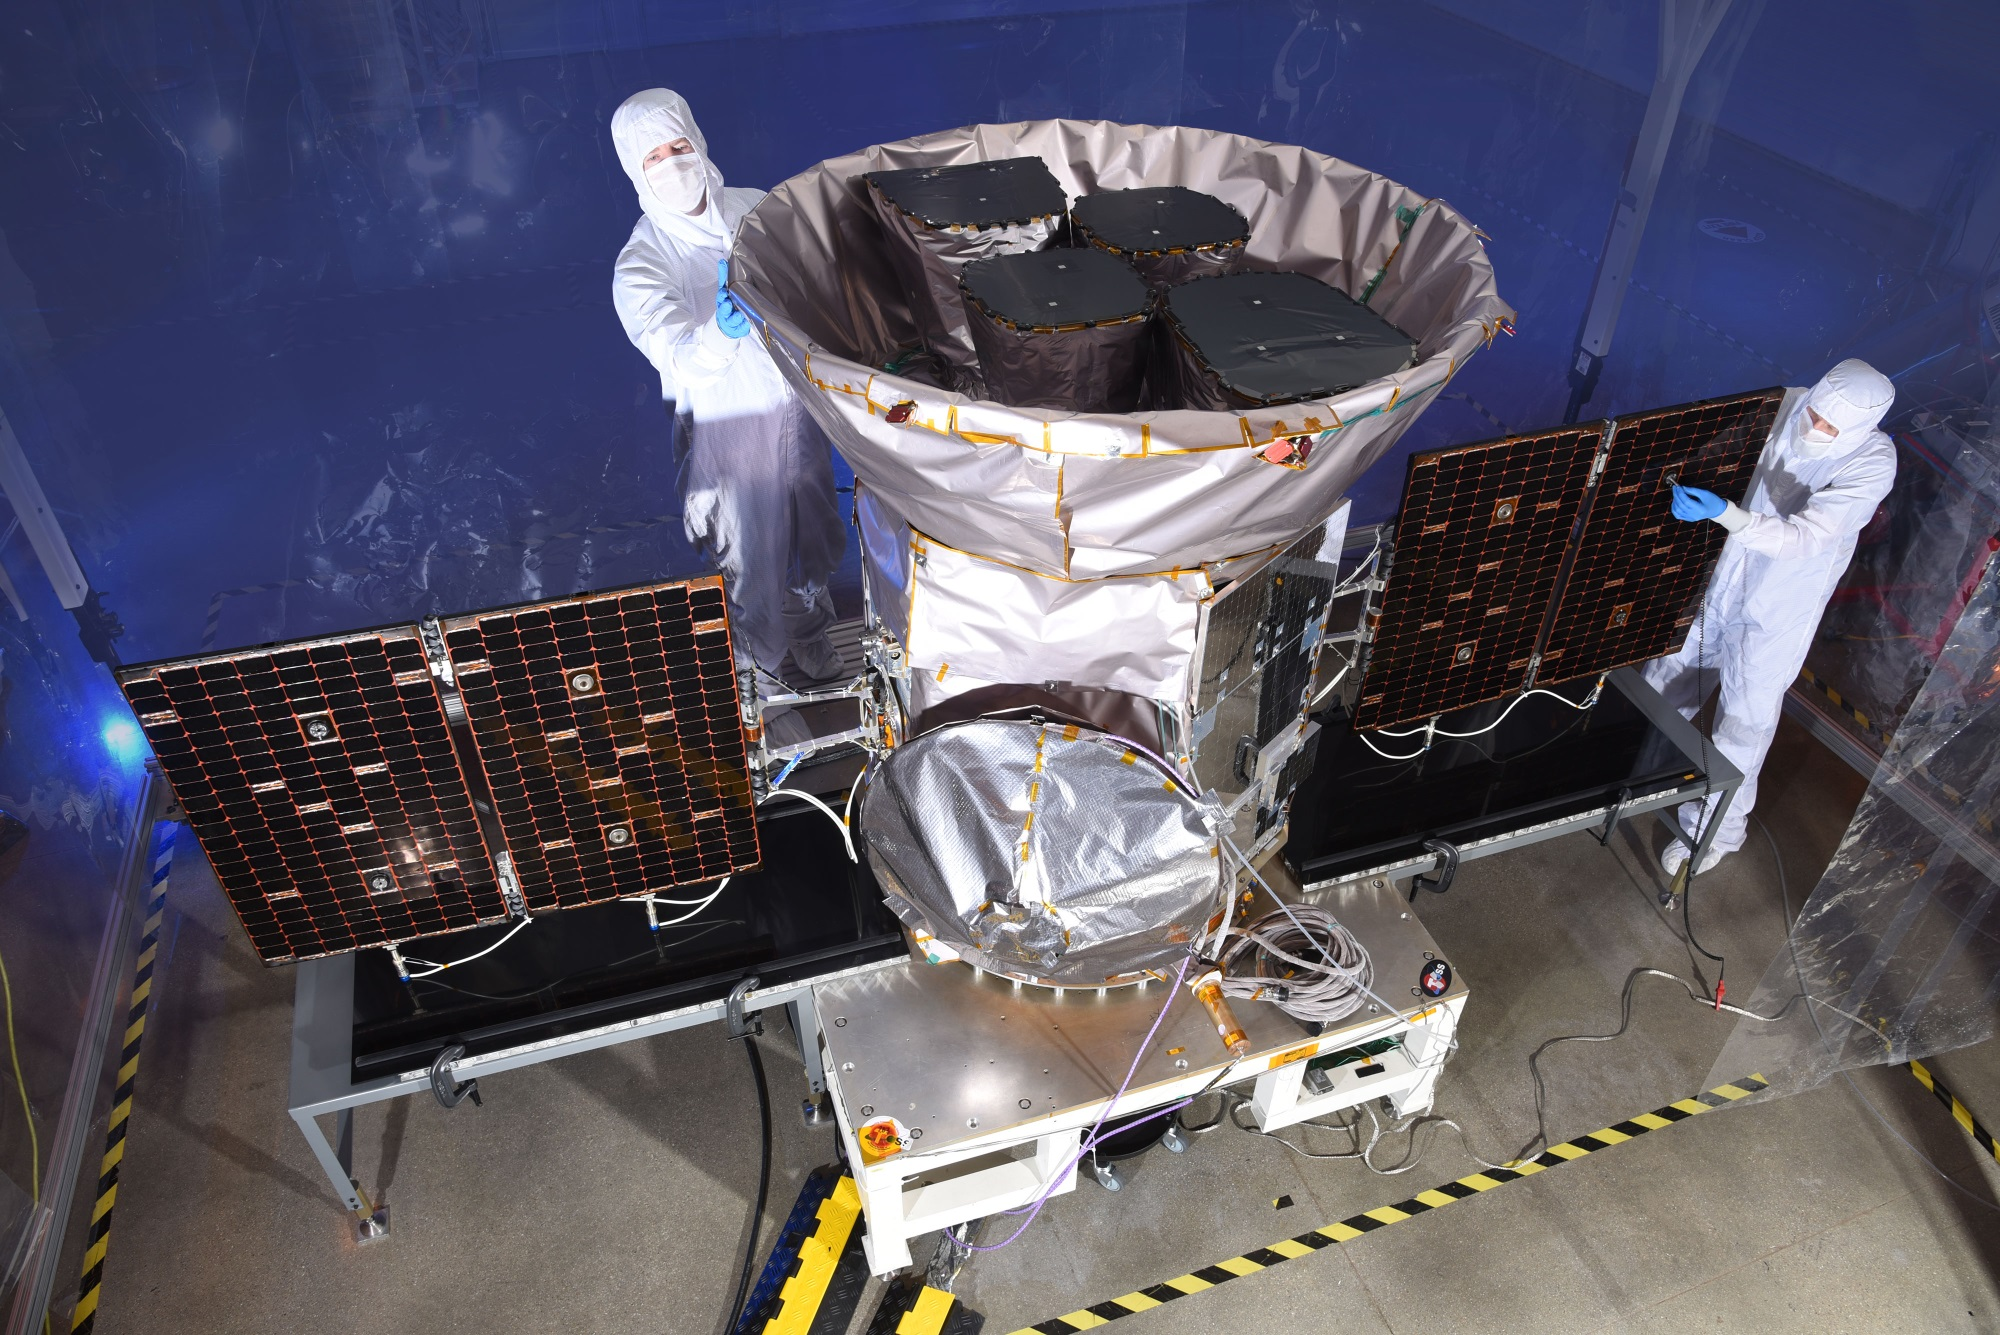 NASA's planet-hunting TESS telescope launches Monday aboard a SpaceX rocket tess with techs 4000